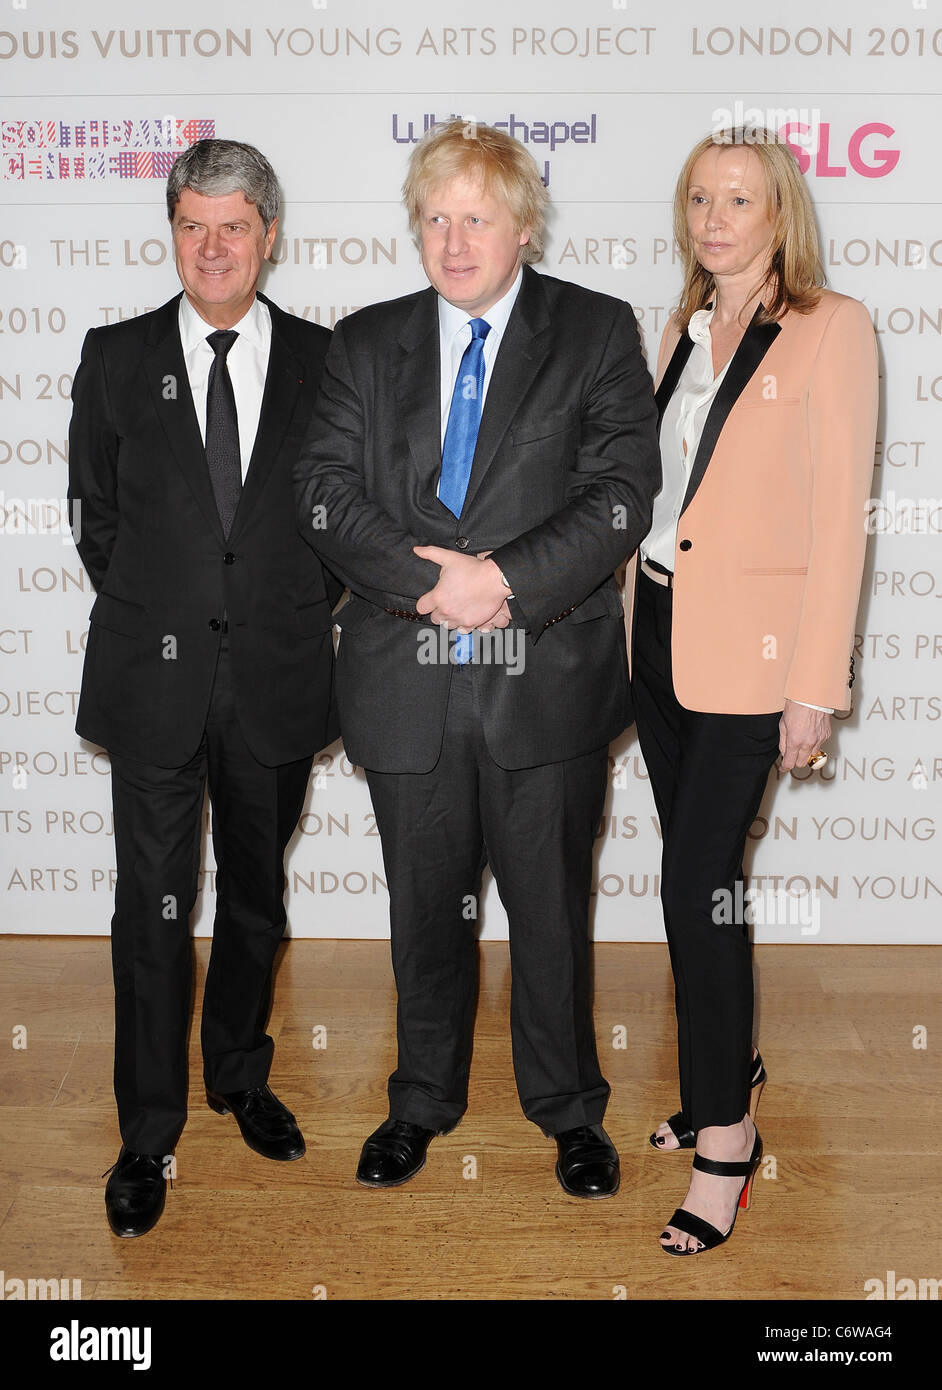 515c447a680 Yves carcelle - chairman and CEO Louis Vuitton, Mayor of London ...